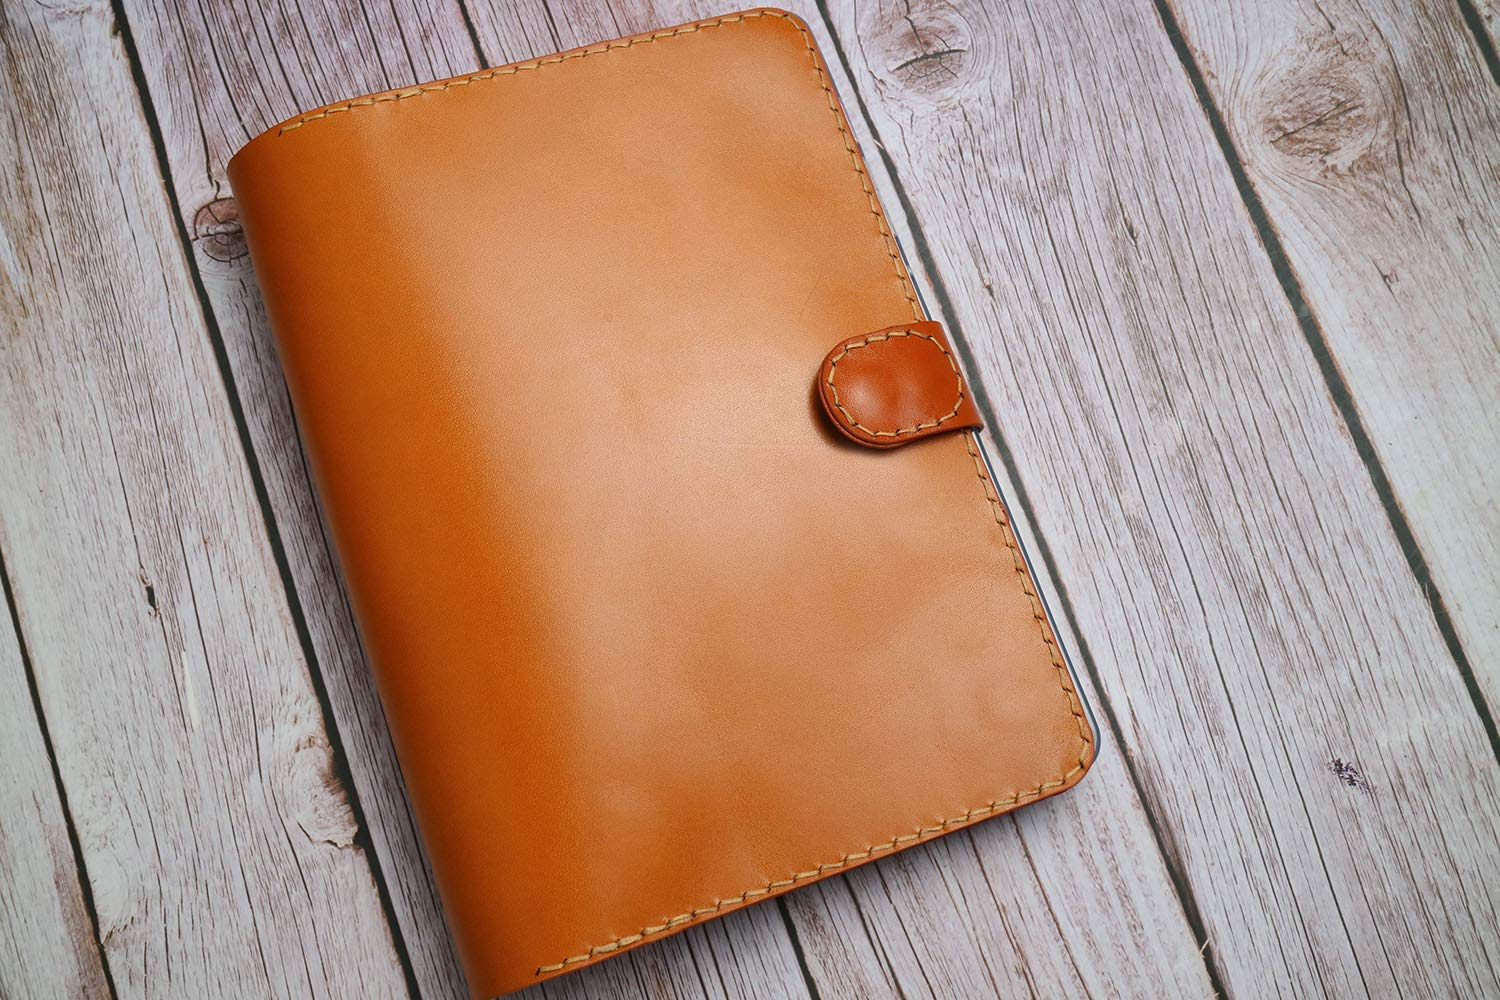 Monogram Max 63% OFF iPad Pro 12.9 Free shipping on posting reviews 2017 Leather Case Cover Customized